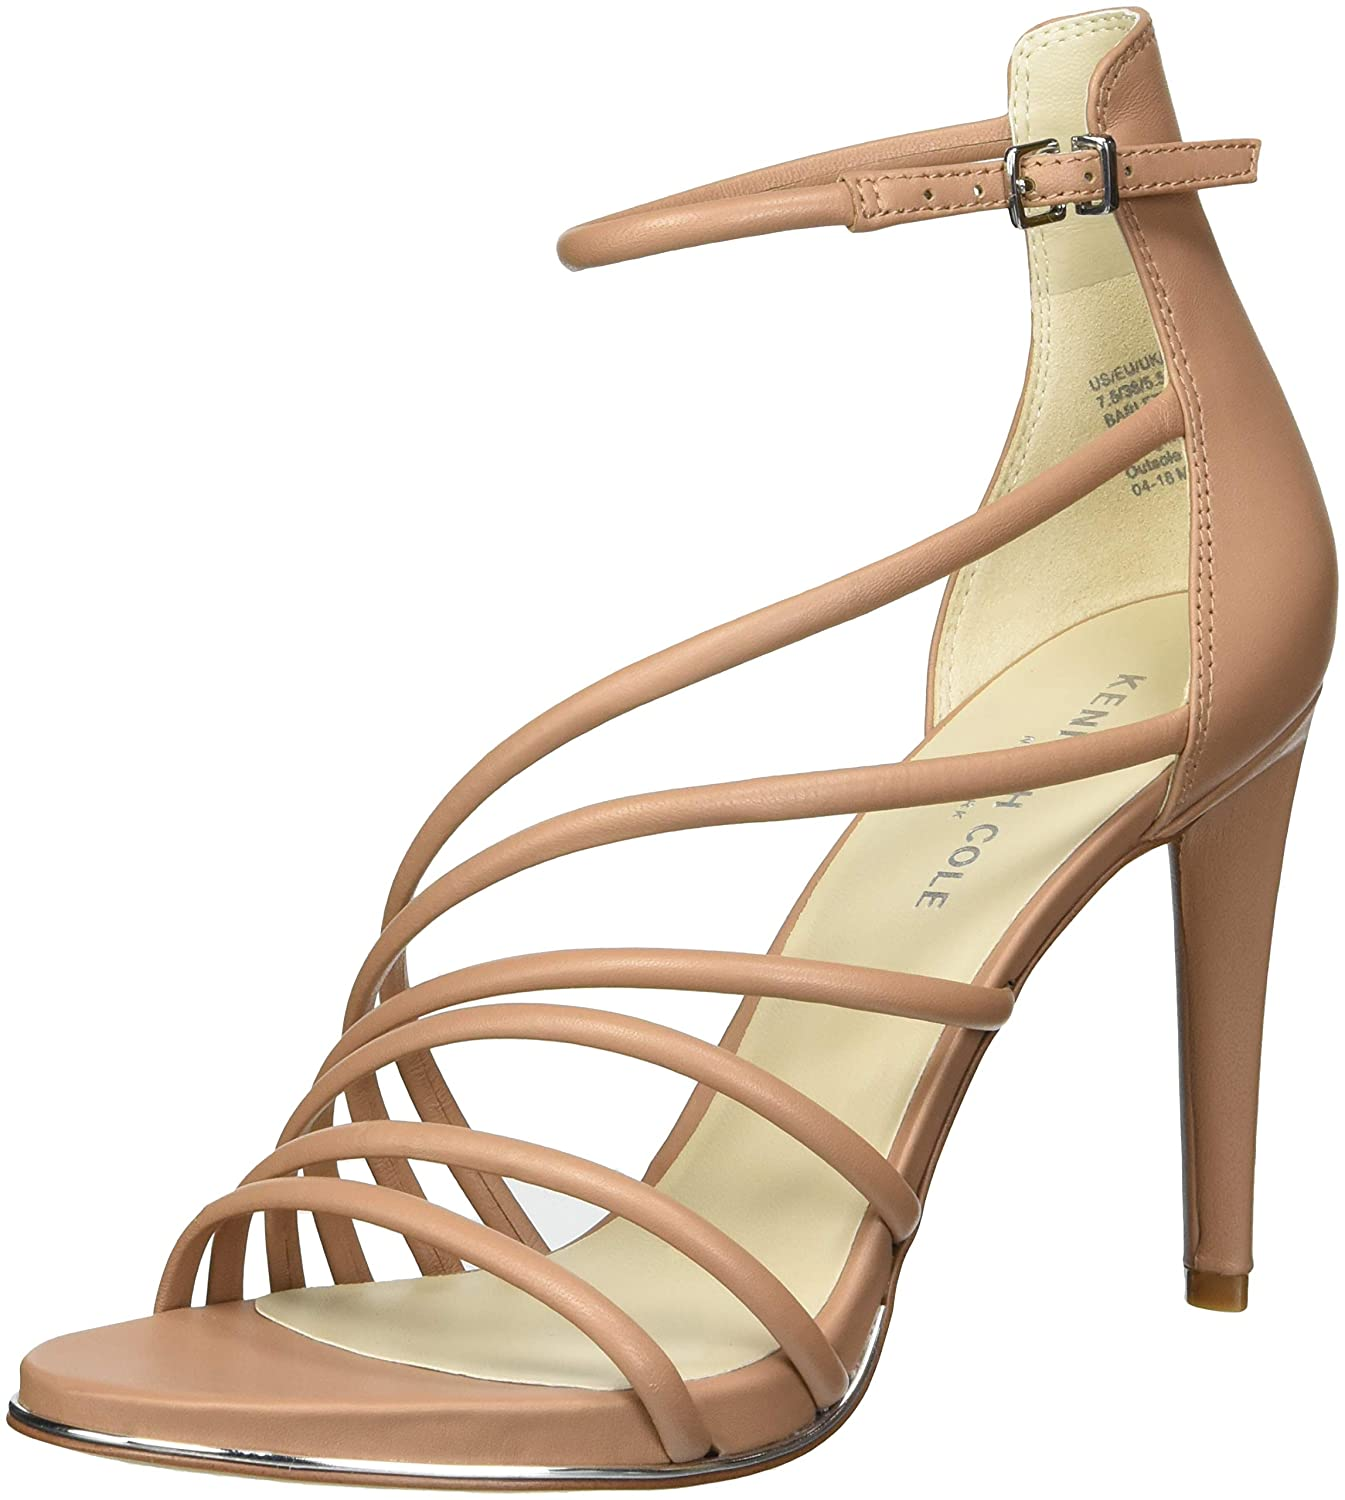 Kenneth Cole New York Wohommes Wohommes Barletta Strappy Sandal Heeled, Latte, 9 M US  service honnête